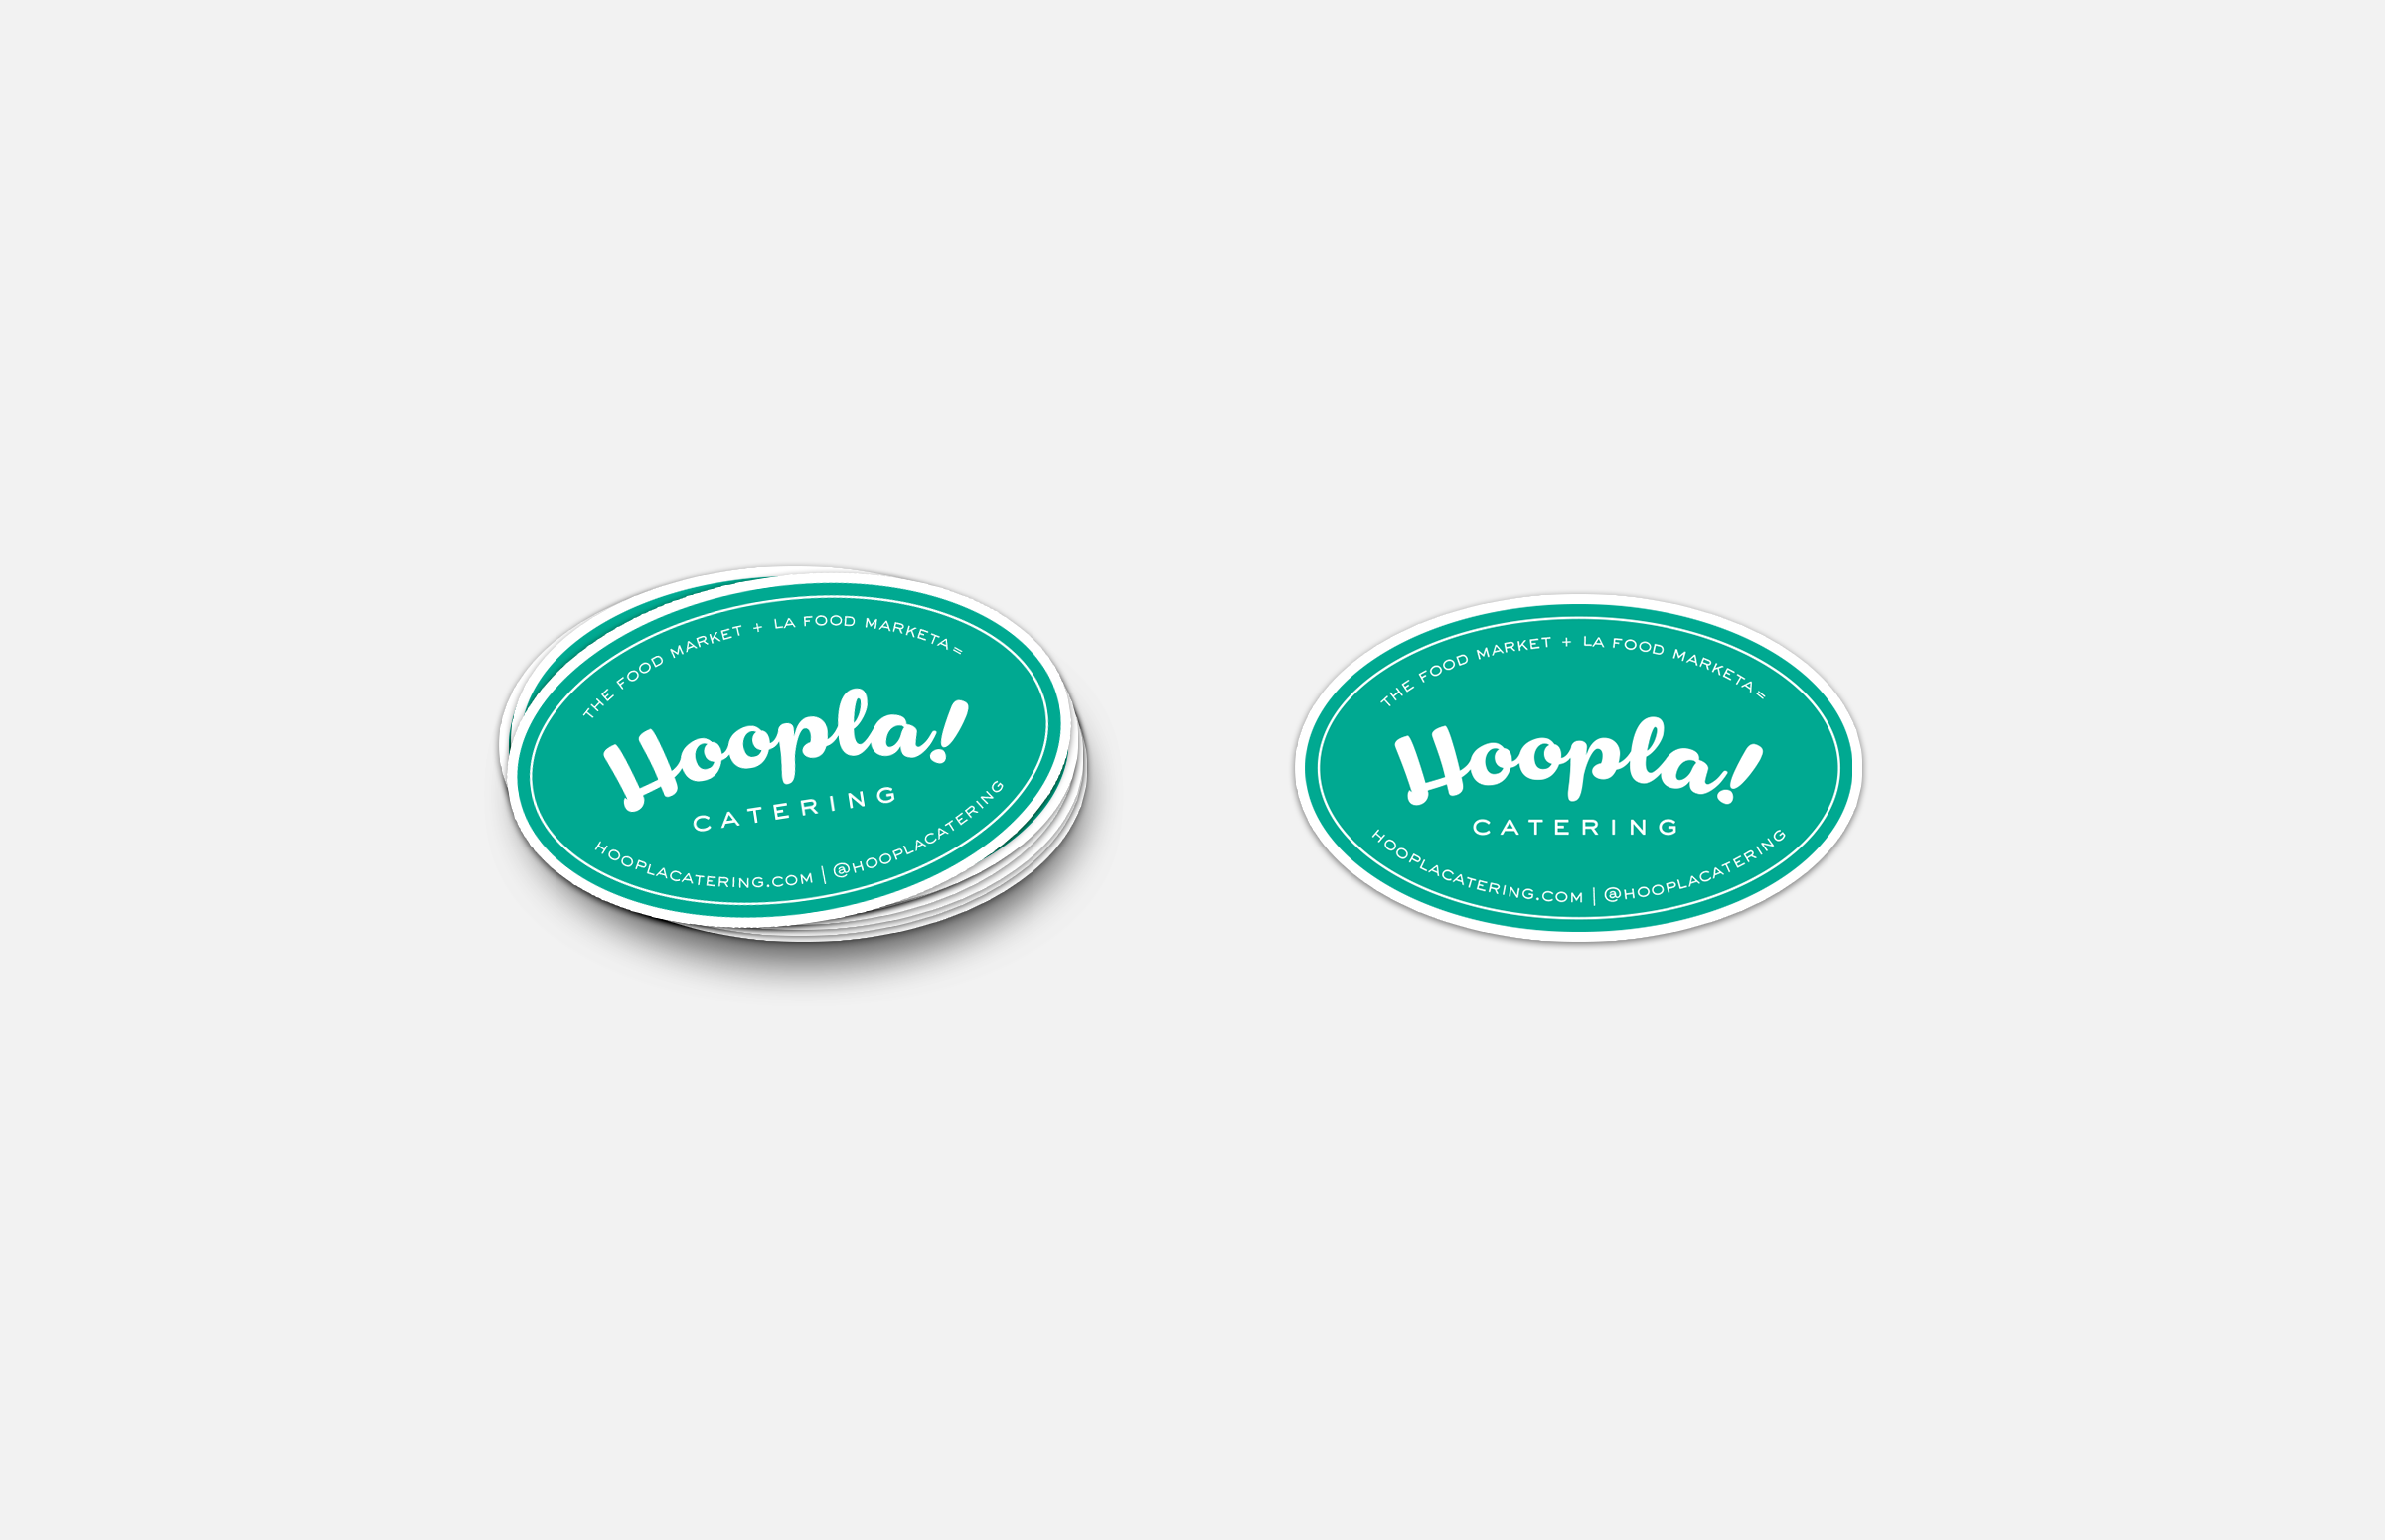 Hoopla! Catering: Oval Sticker Design